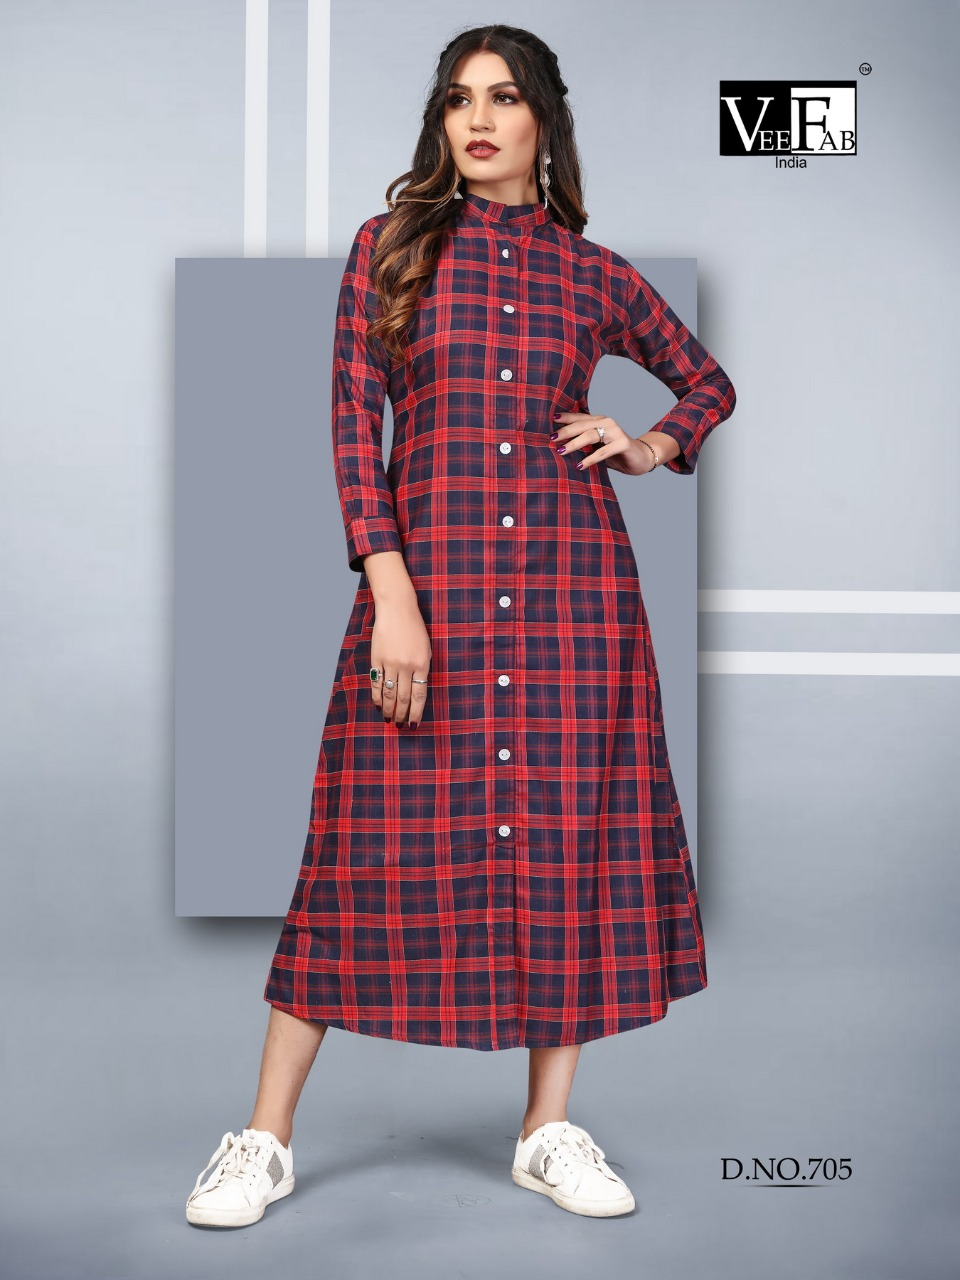 Vee Fab Winter Grace Vol 7 Kurti Wholesale Catalog 6 Pcs 4 - Vee Fab Winter Grace Vol 7 Kurti Wholesale Catalog 6 Pcs